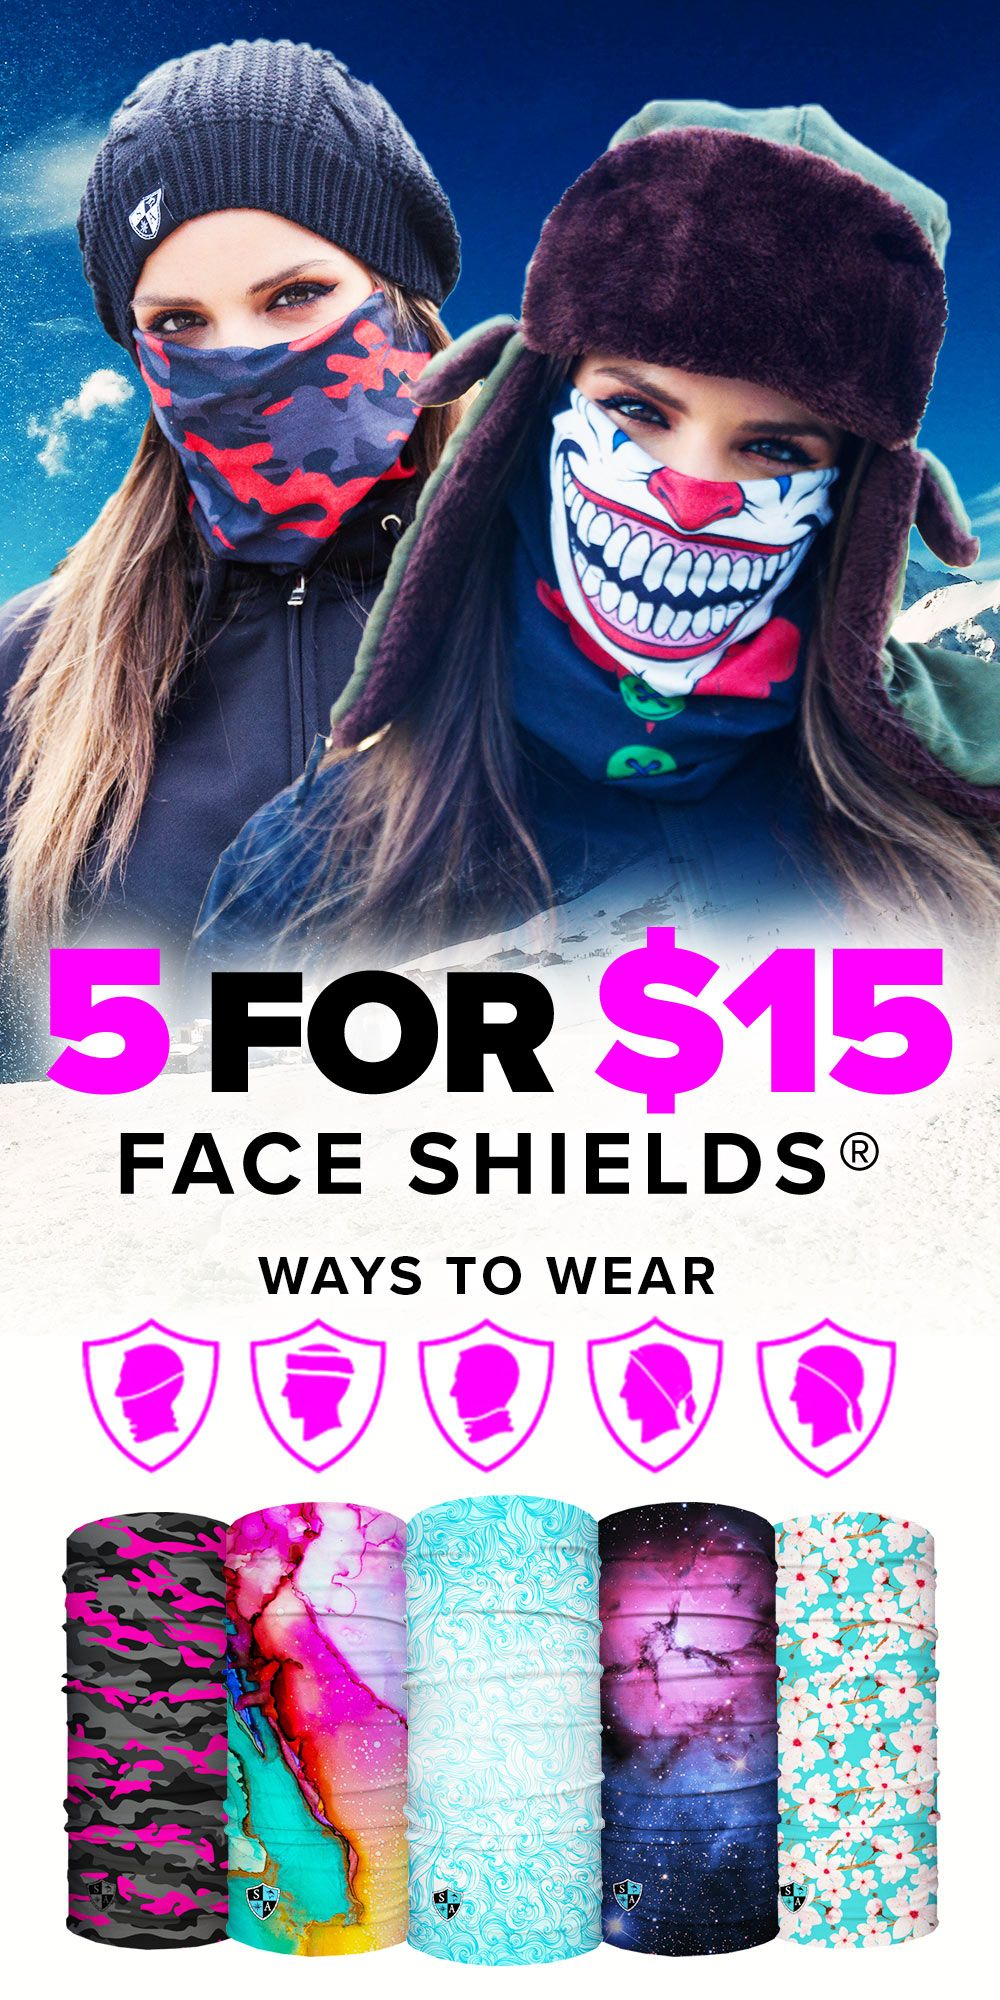 Pin on Face shield